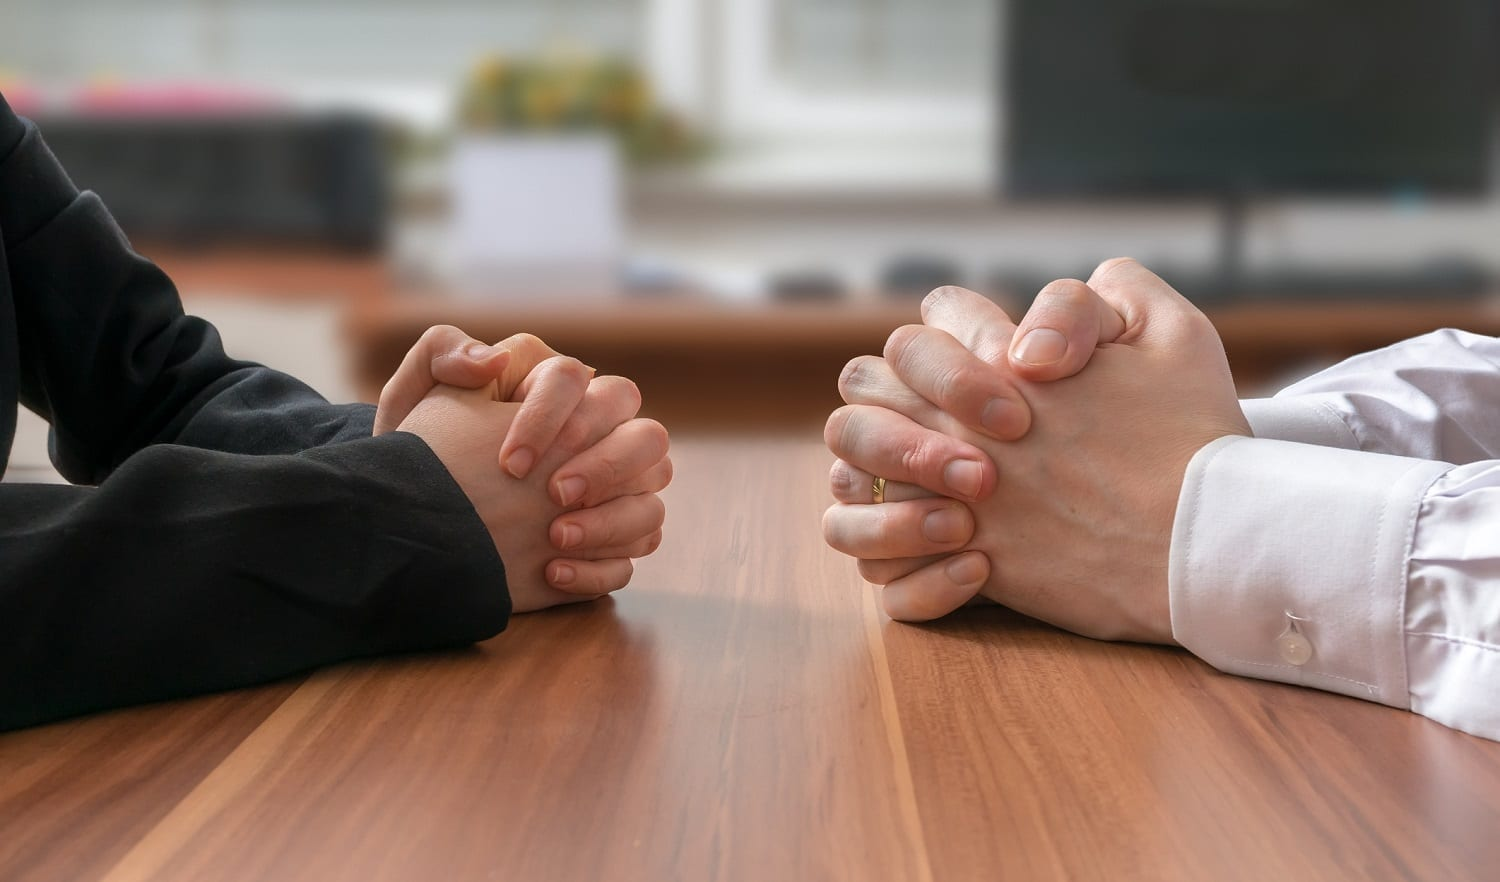 hands of people meeting across the table: ID 66132007 © Vchalup | Dreamstime.com